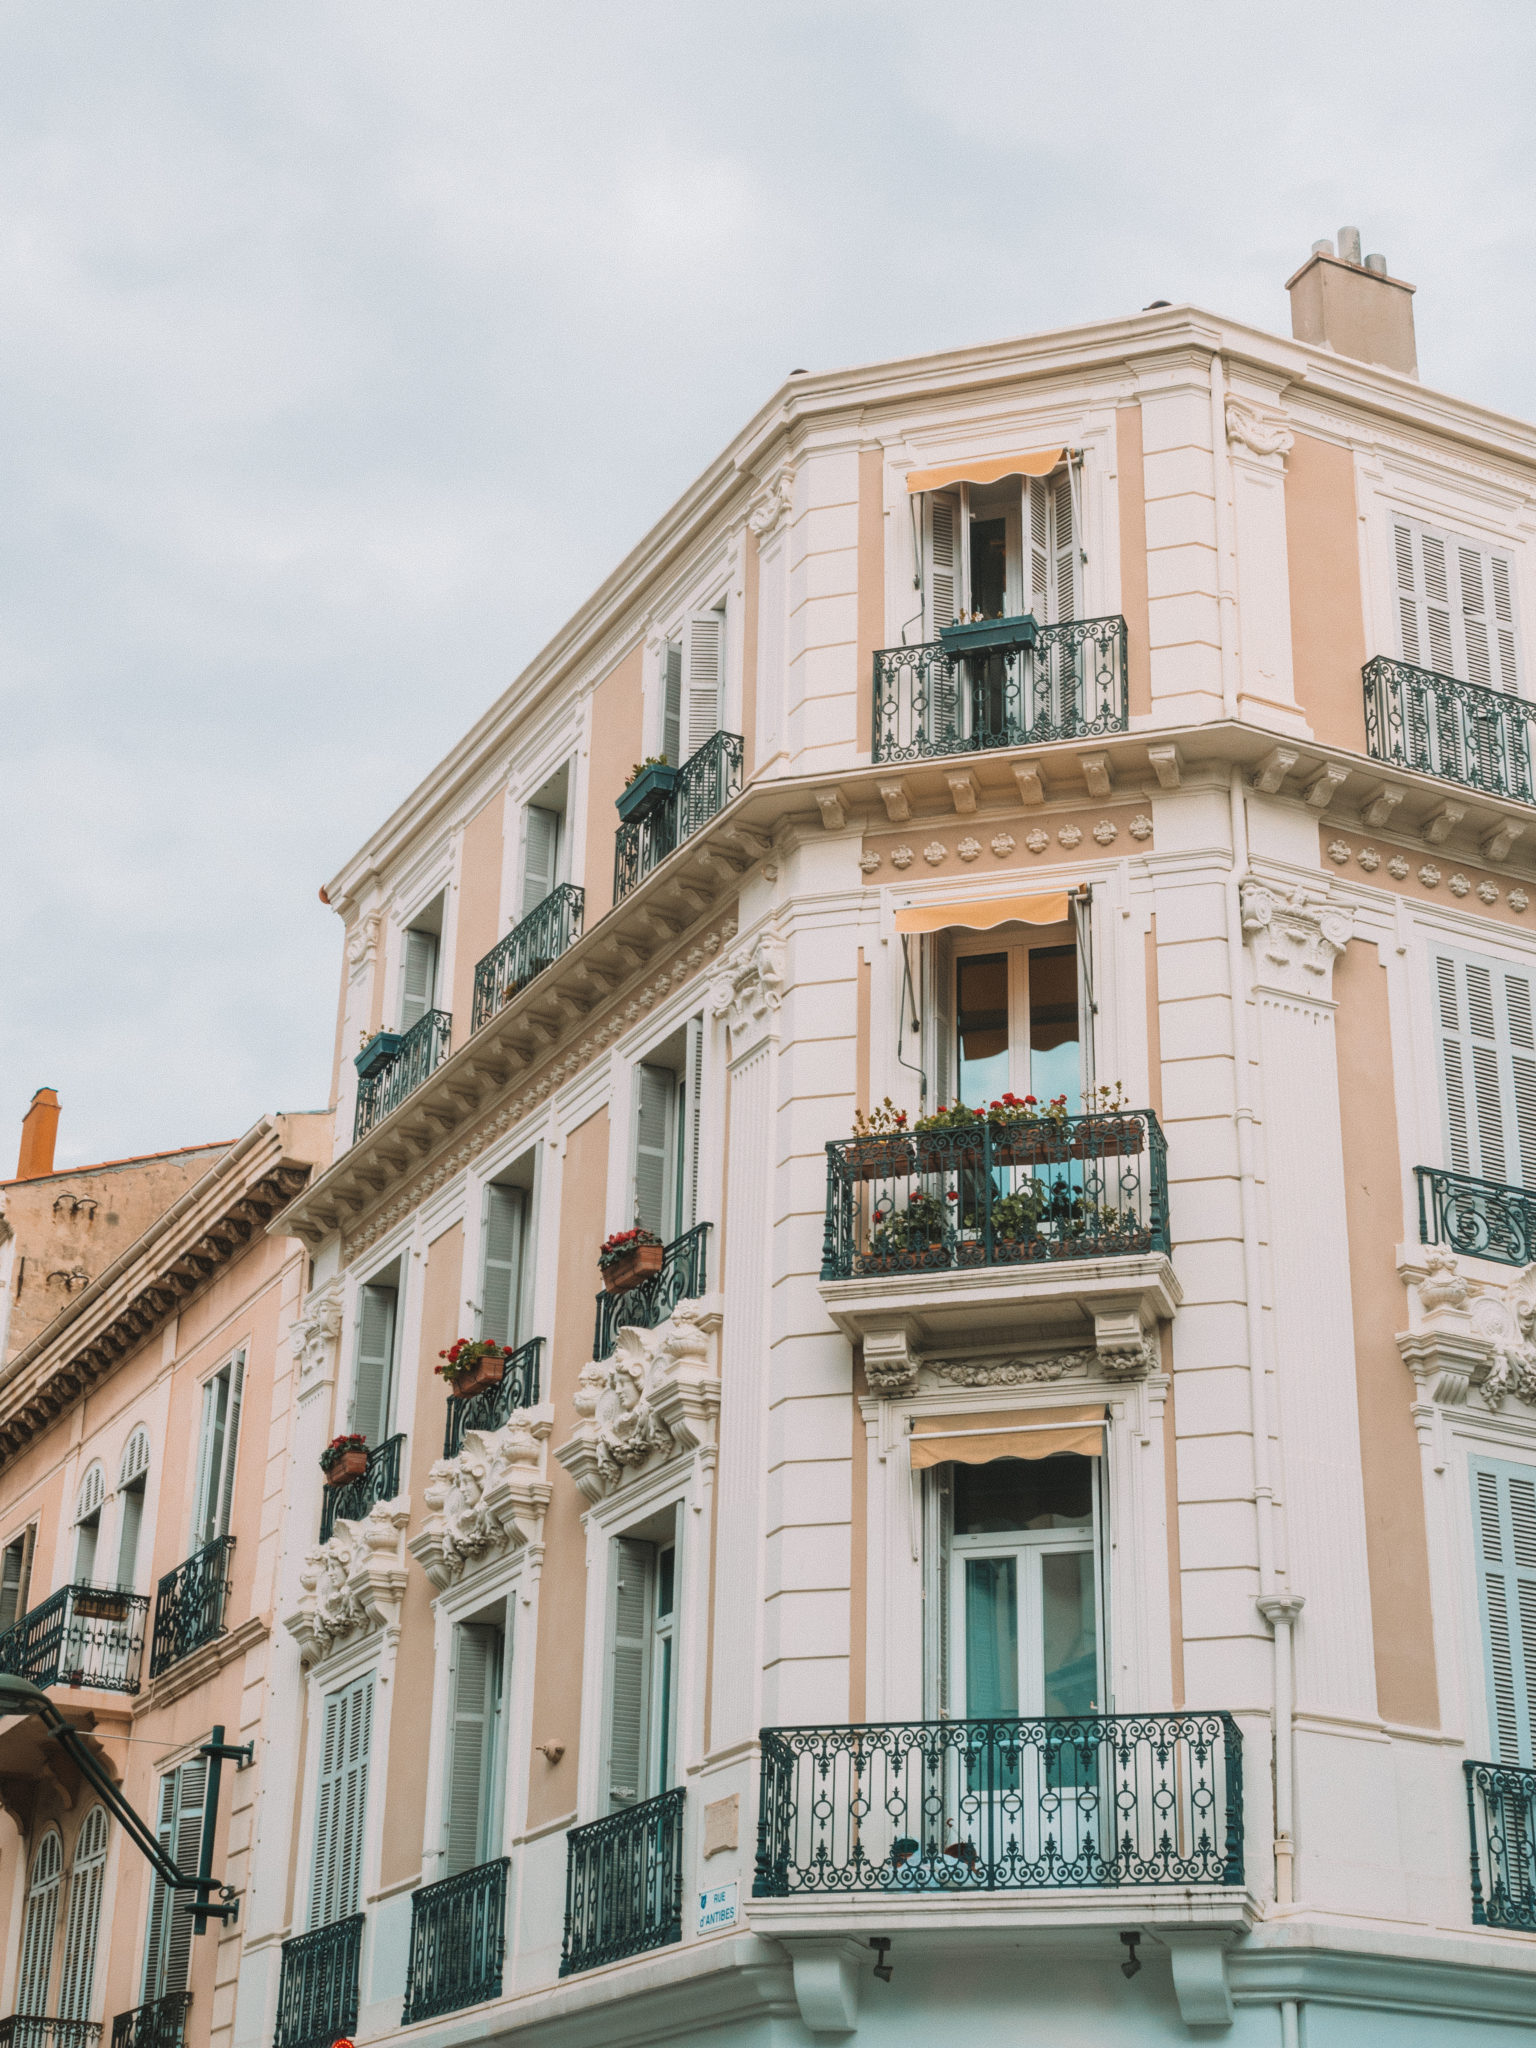 Destination Guide to Cannes | WORLD OF WANDERLUST